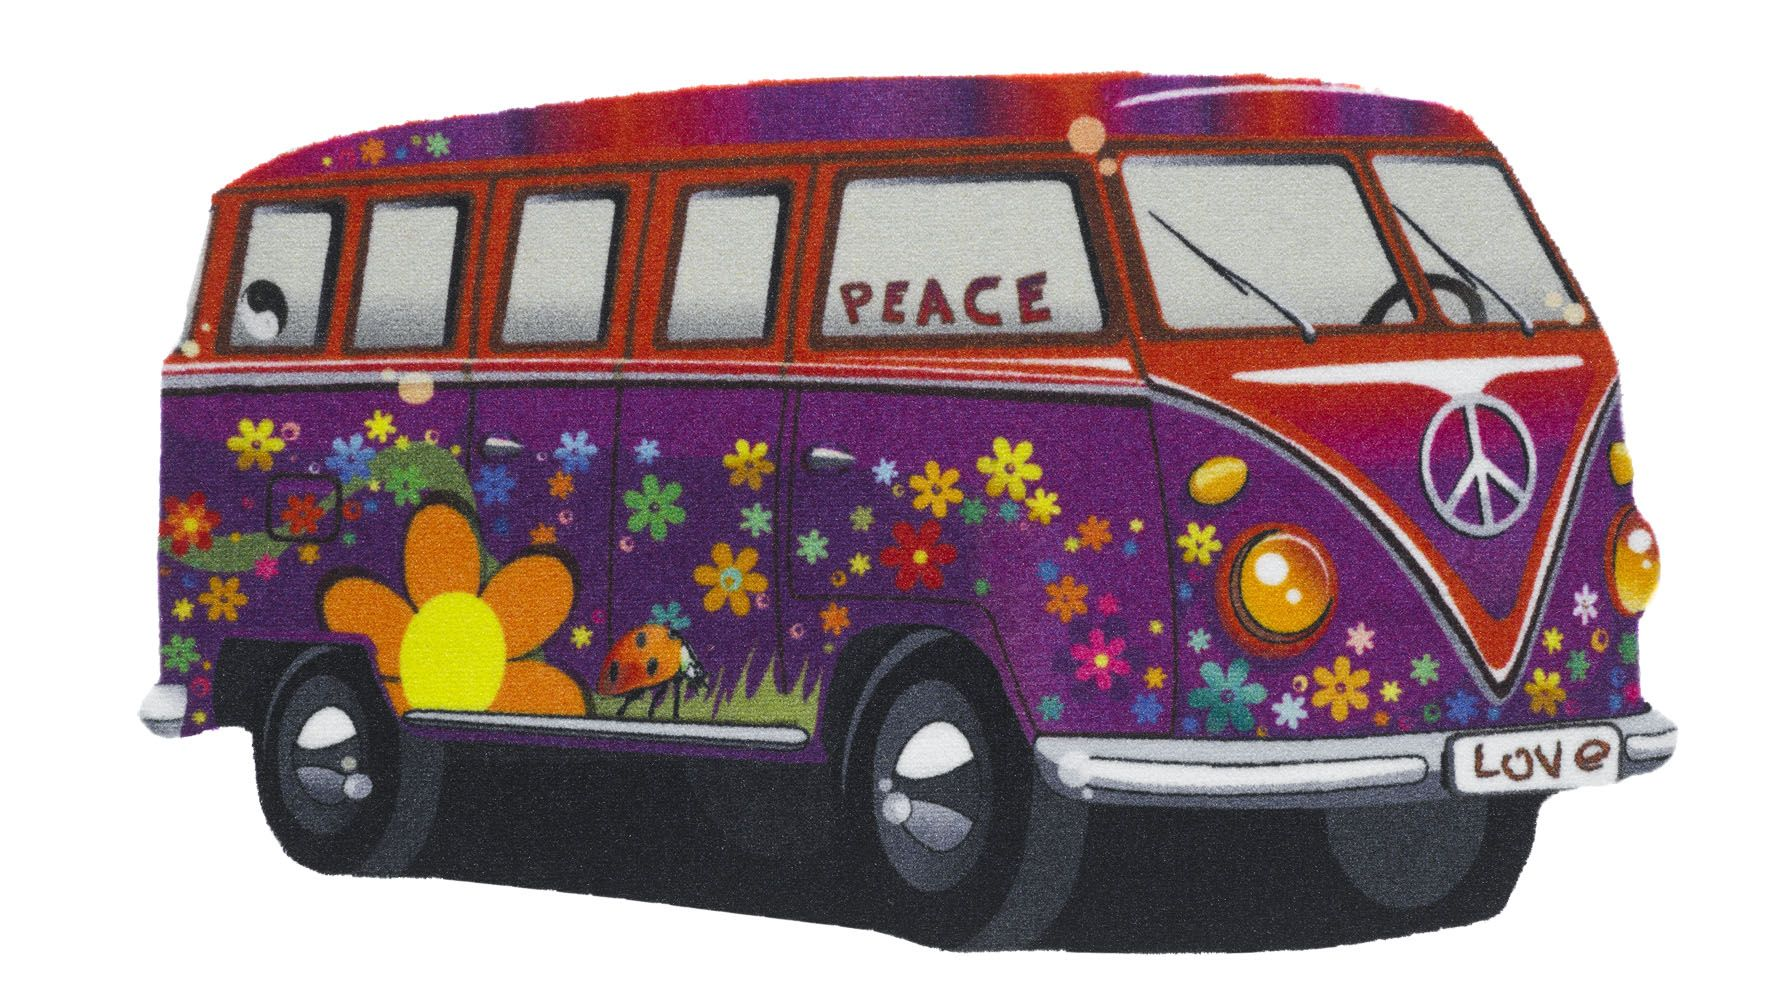 Campervan in purple  Polyamid chromojet 3D printed shaped rug with non-slip backing - fantastic in a childs bedroom/playroom   Size 40x70cm